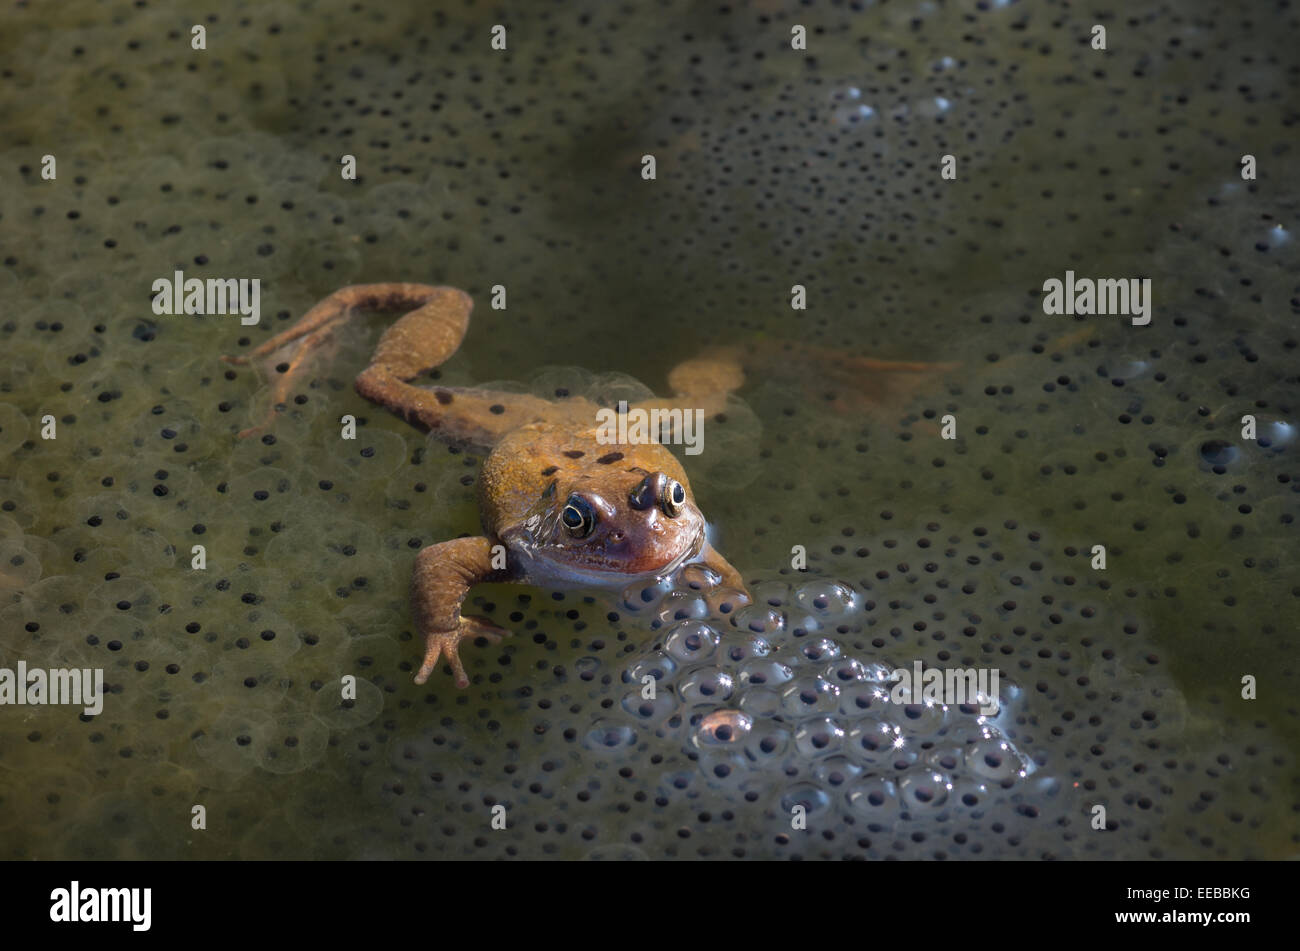 A frog, among frog spawn, in a garden pond. - Stock Image